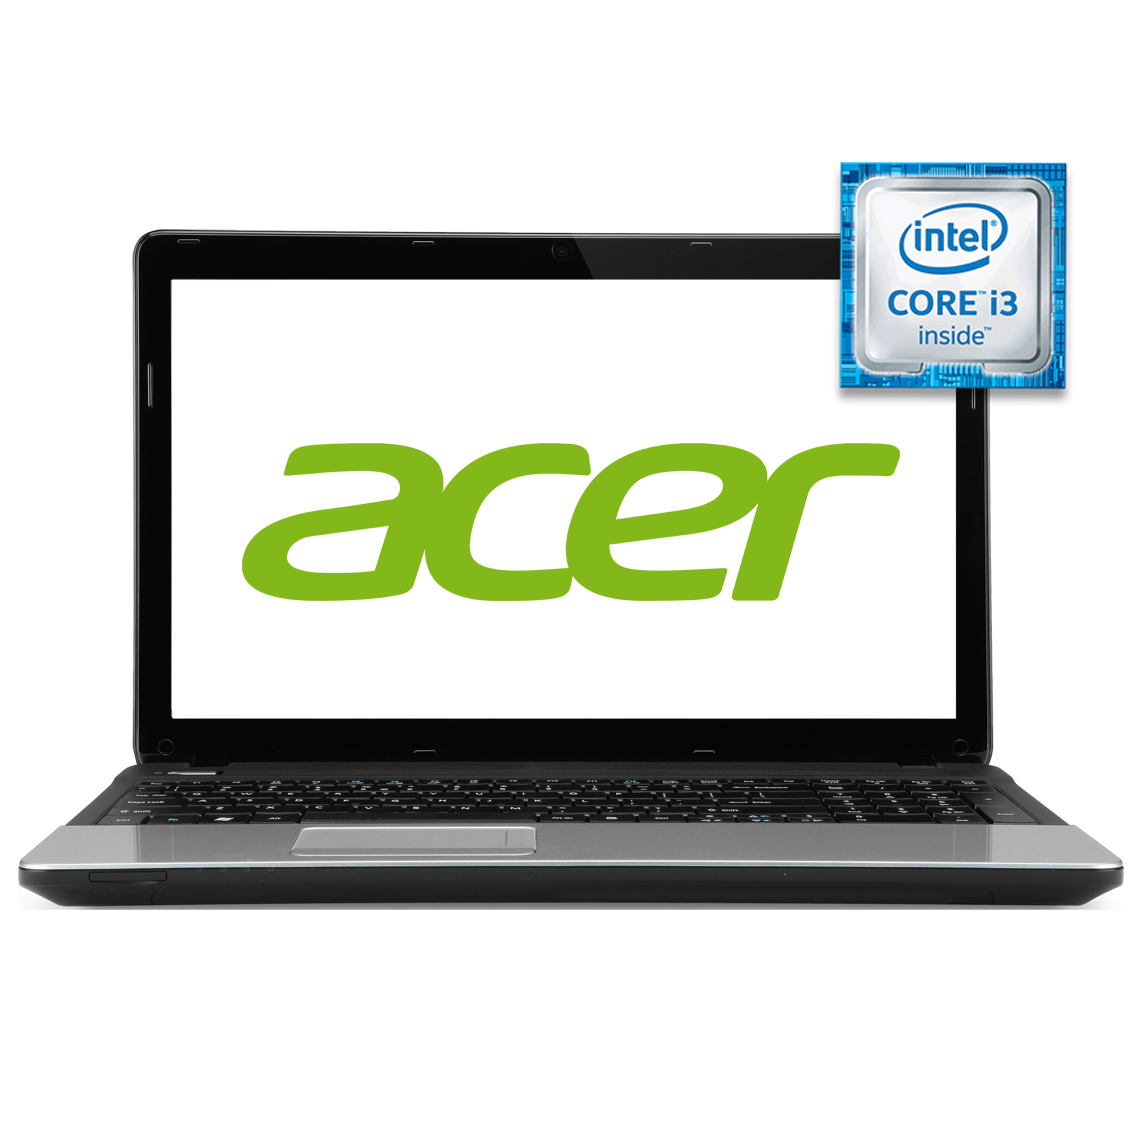 Acer - 17.3 inch Core i3 2nd Gen